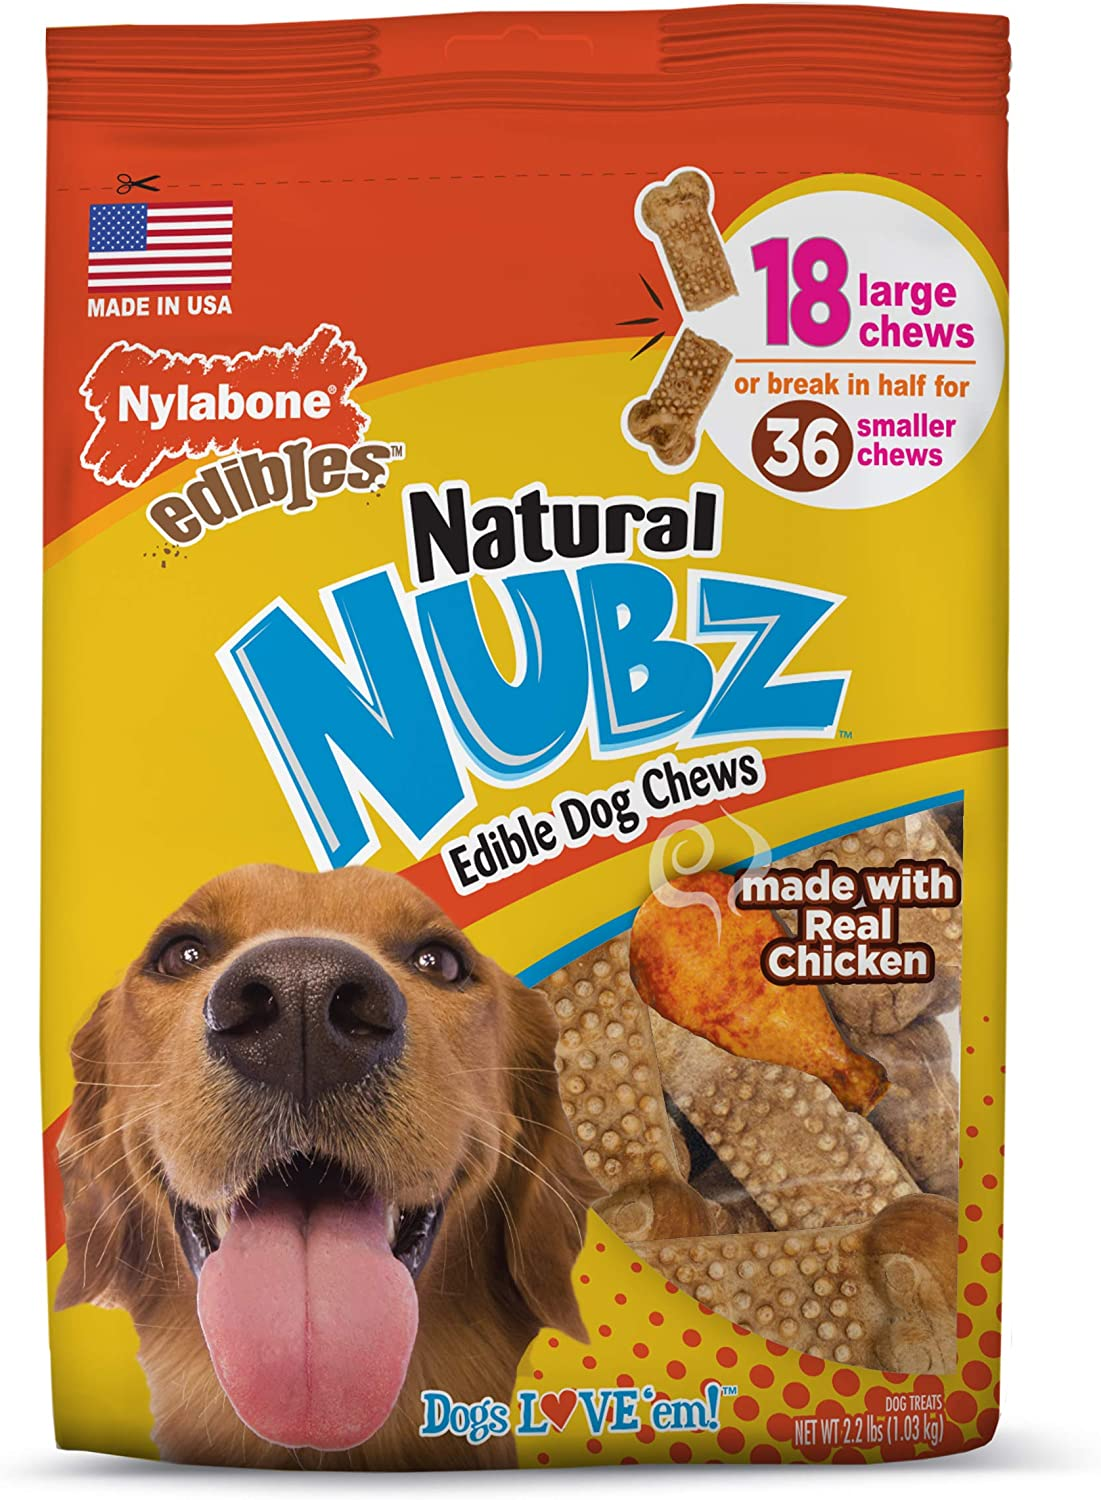 Nylabone Nubz Natural Dog Chews, Treats for Large Dogs, 18 Count